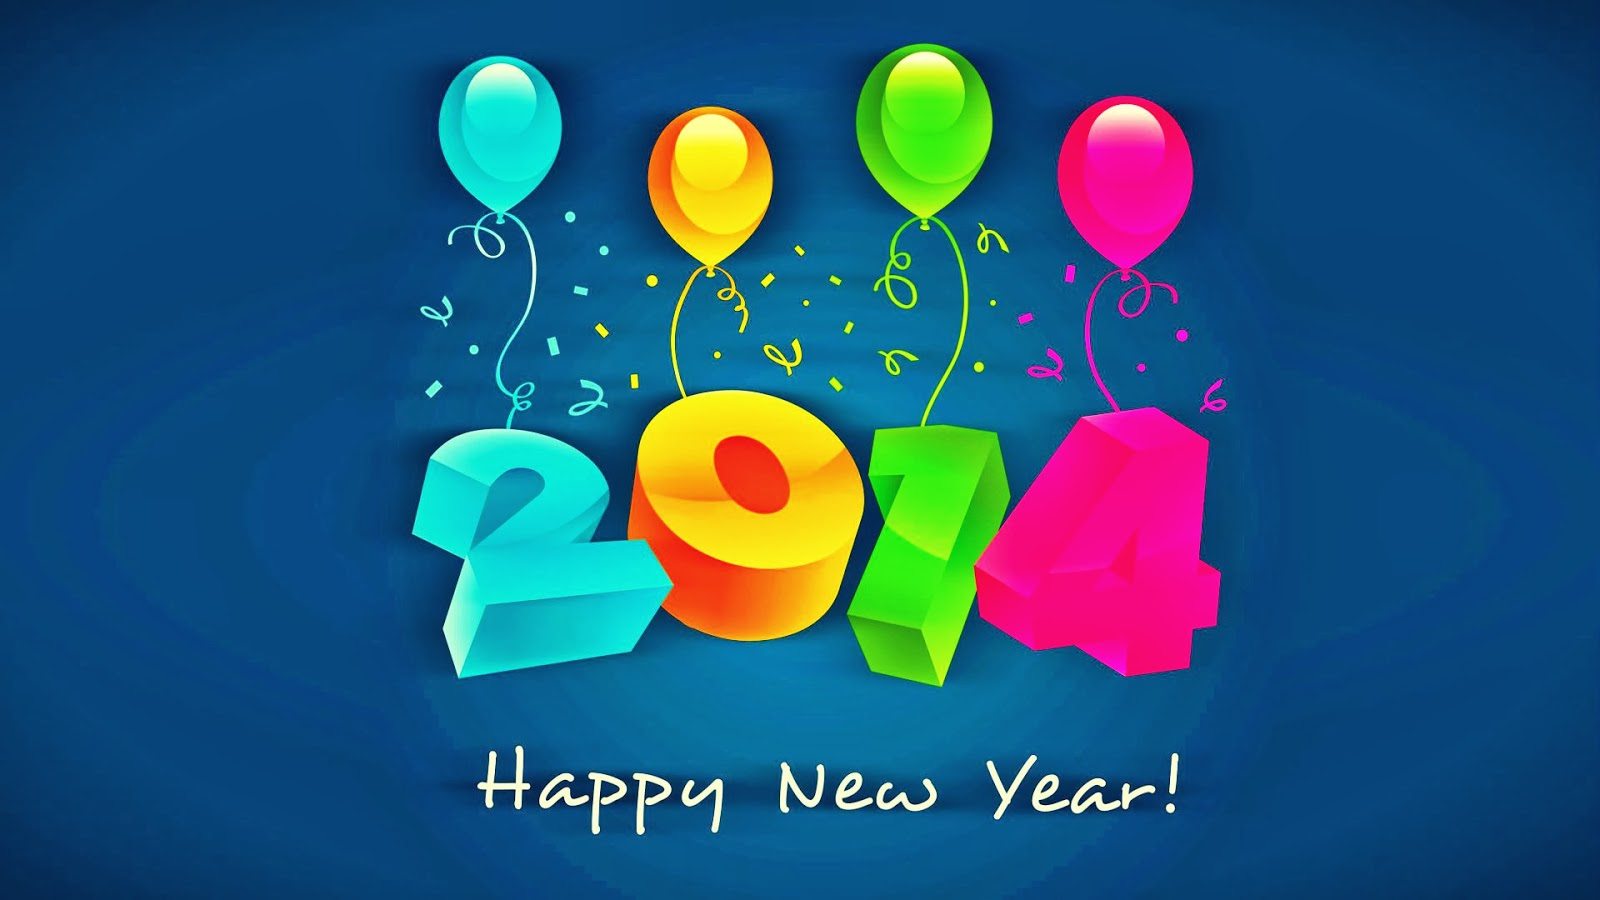 Happy New Year 2014 Animated 3D Wallpapers Colorful Greetings